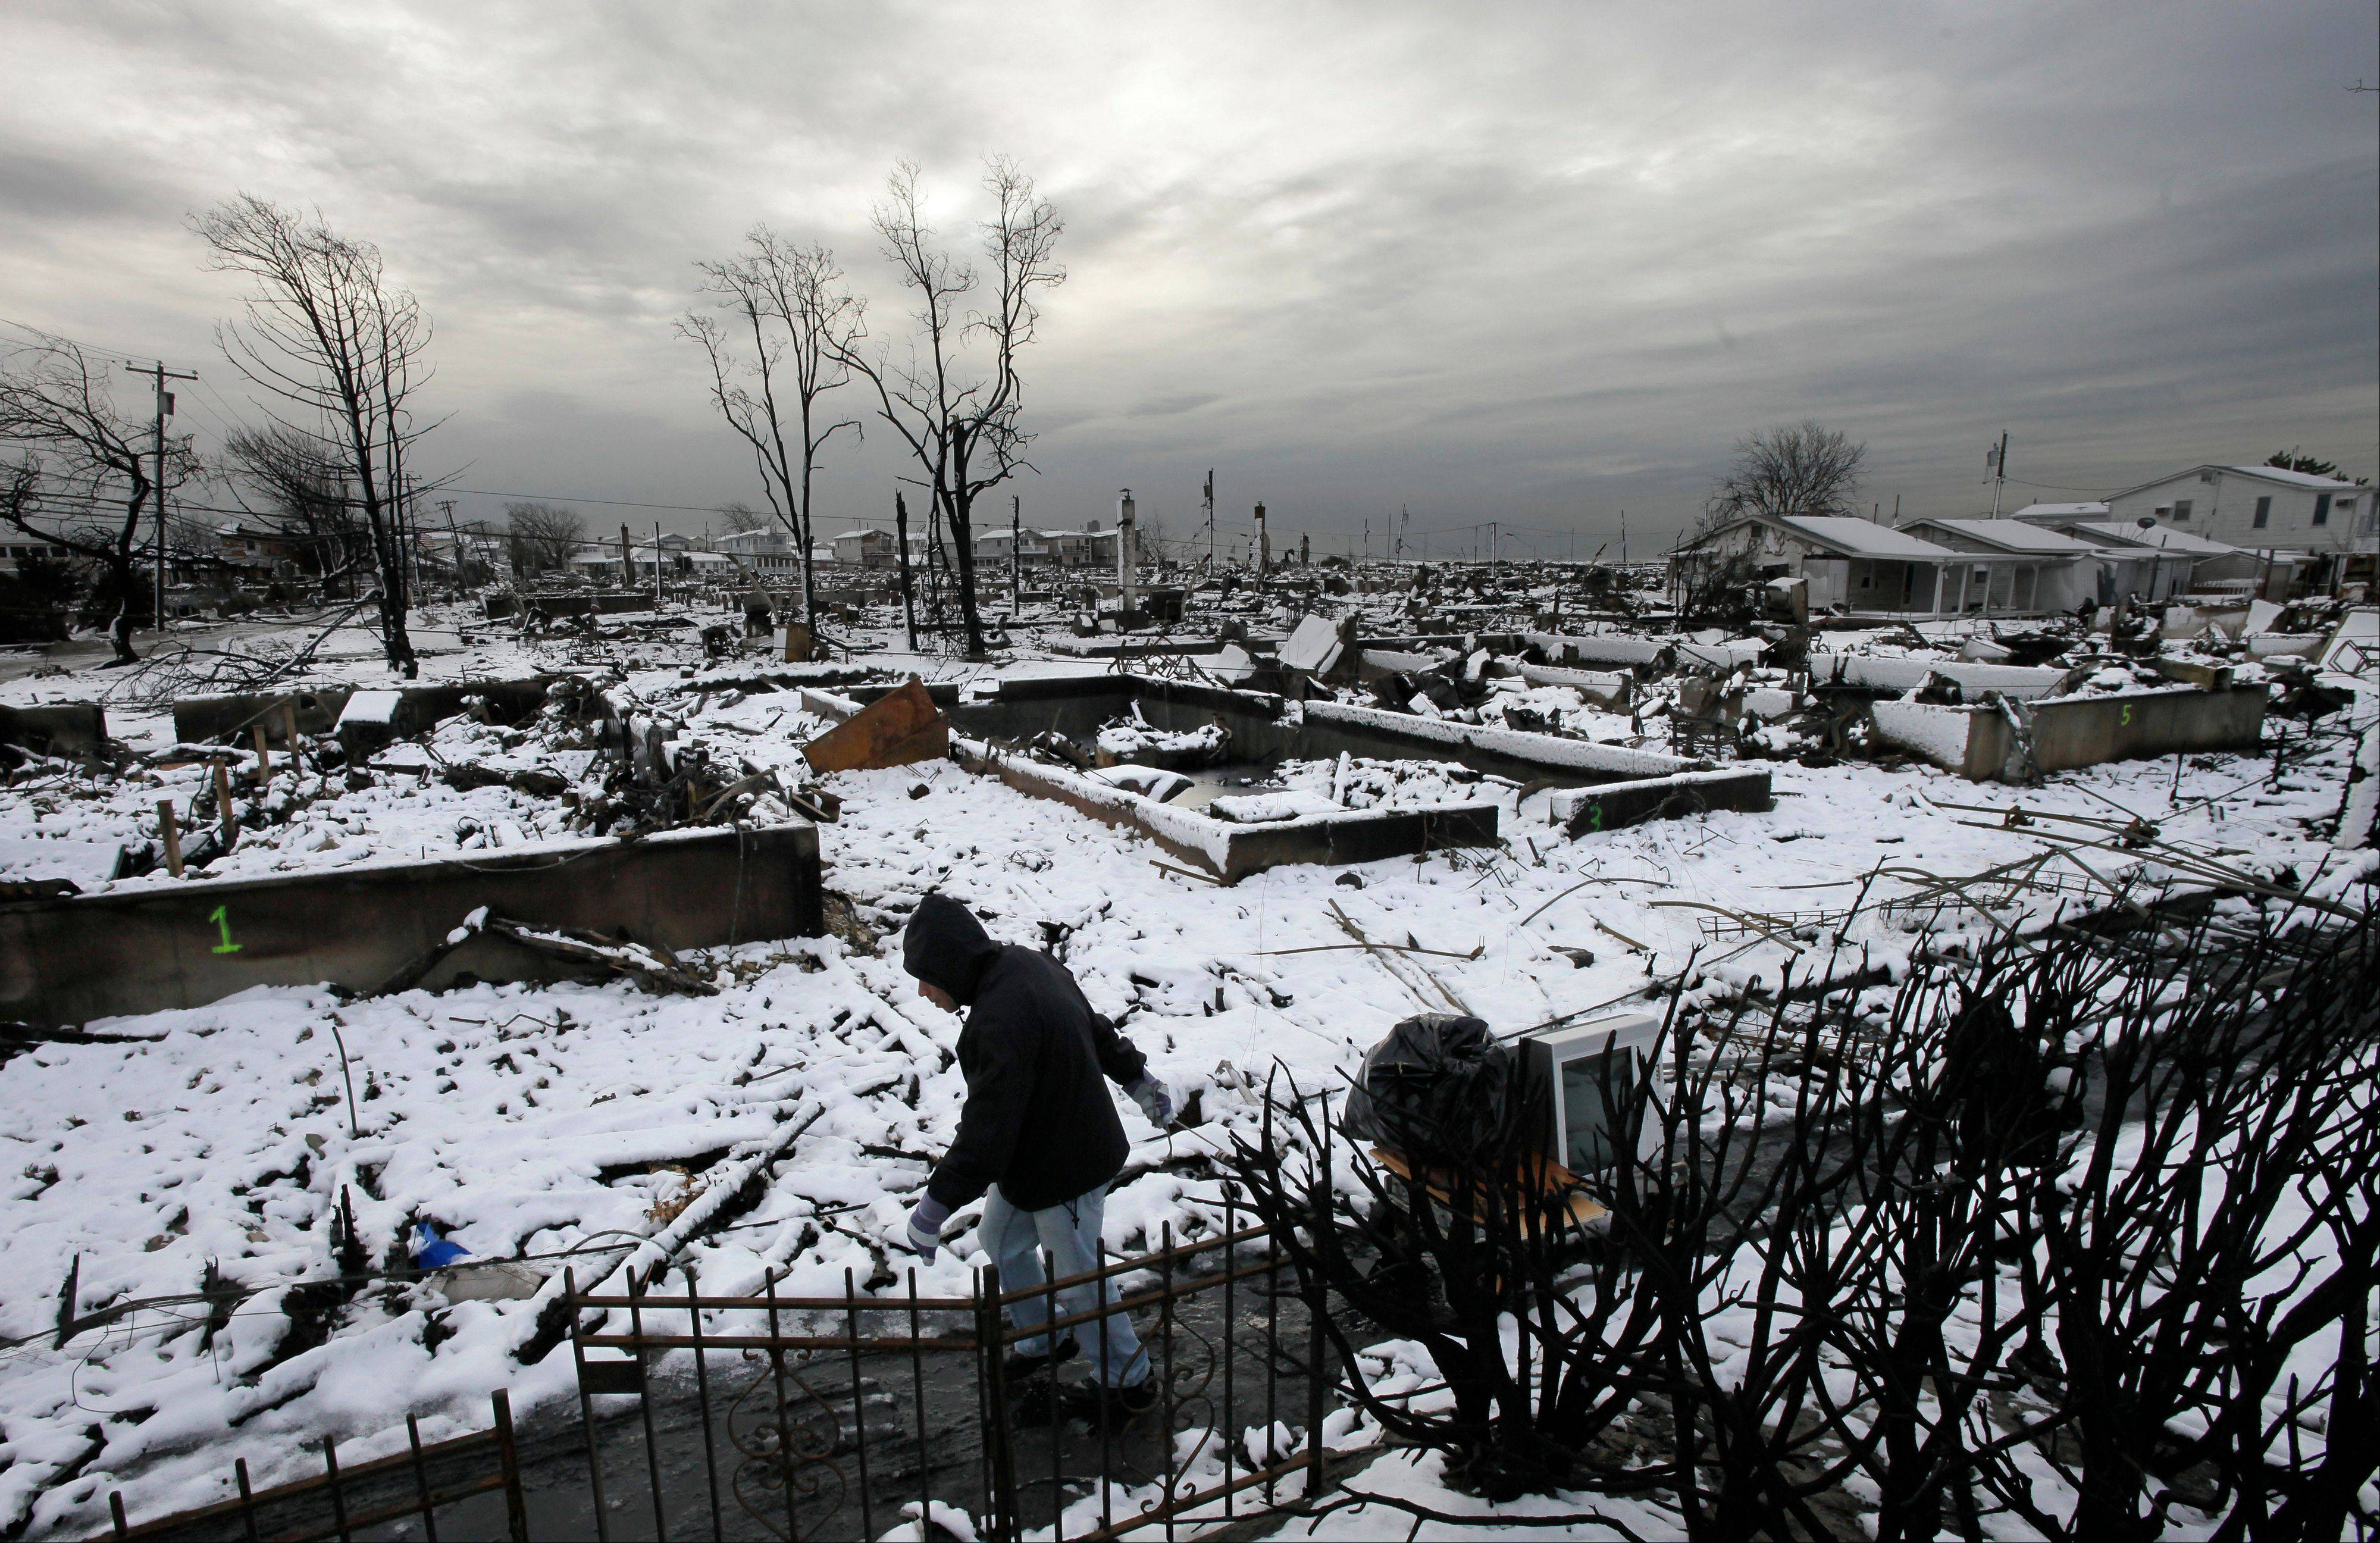 Damon Rasinya carts debris from his family home past the fire-scorched landscape of Breezy Point after a Nor�easter snow, Thursday, Nov. 8, 2012 in New York. The beachfront neighborhood was devastated during Superstorm Sandy when a fire pushed by the raging winds destroyed many homes.